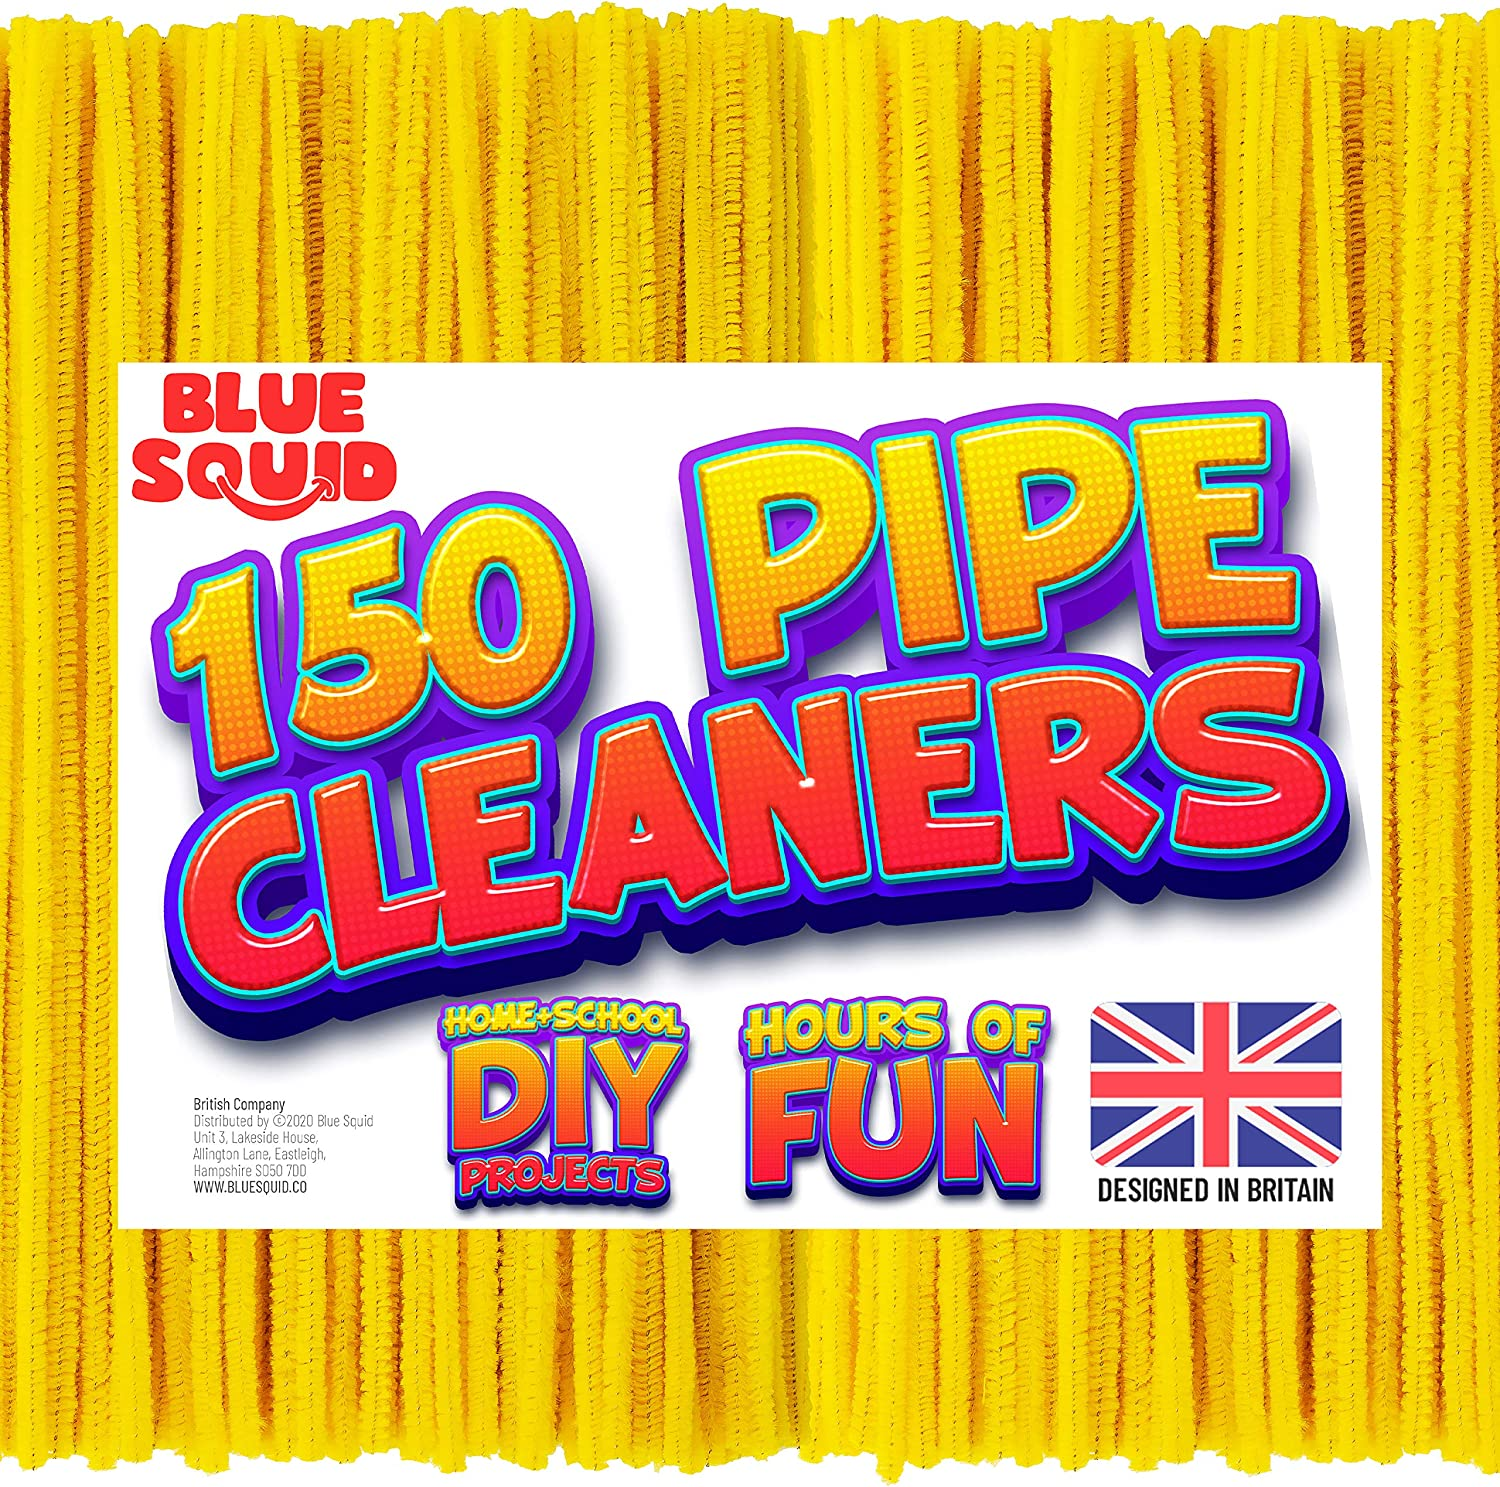 Pipe Cleaners Craft Chenille Stems Extra Long Pieces 150 Pcs Yellow Chenille Cleaners DIY Art /& Craft Projects Yellow Pipe Cleaners Sparkle Crafting Colors Kids Fuzzy Sticks Crafts